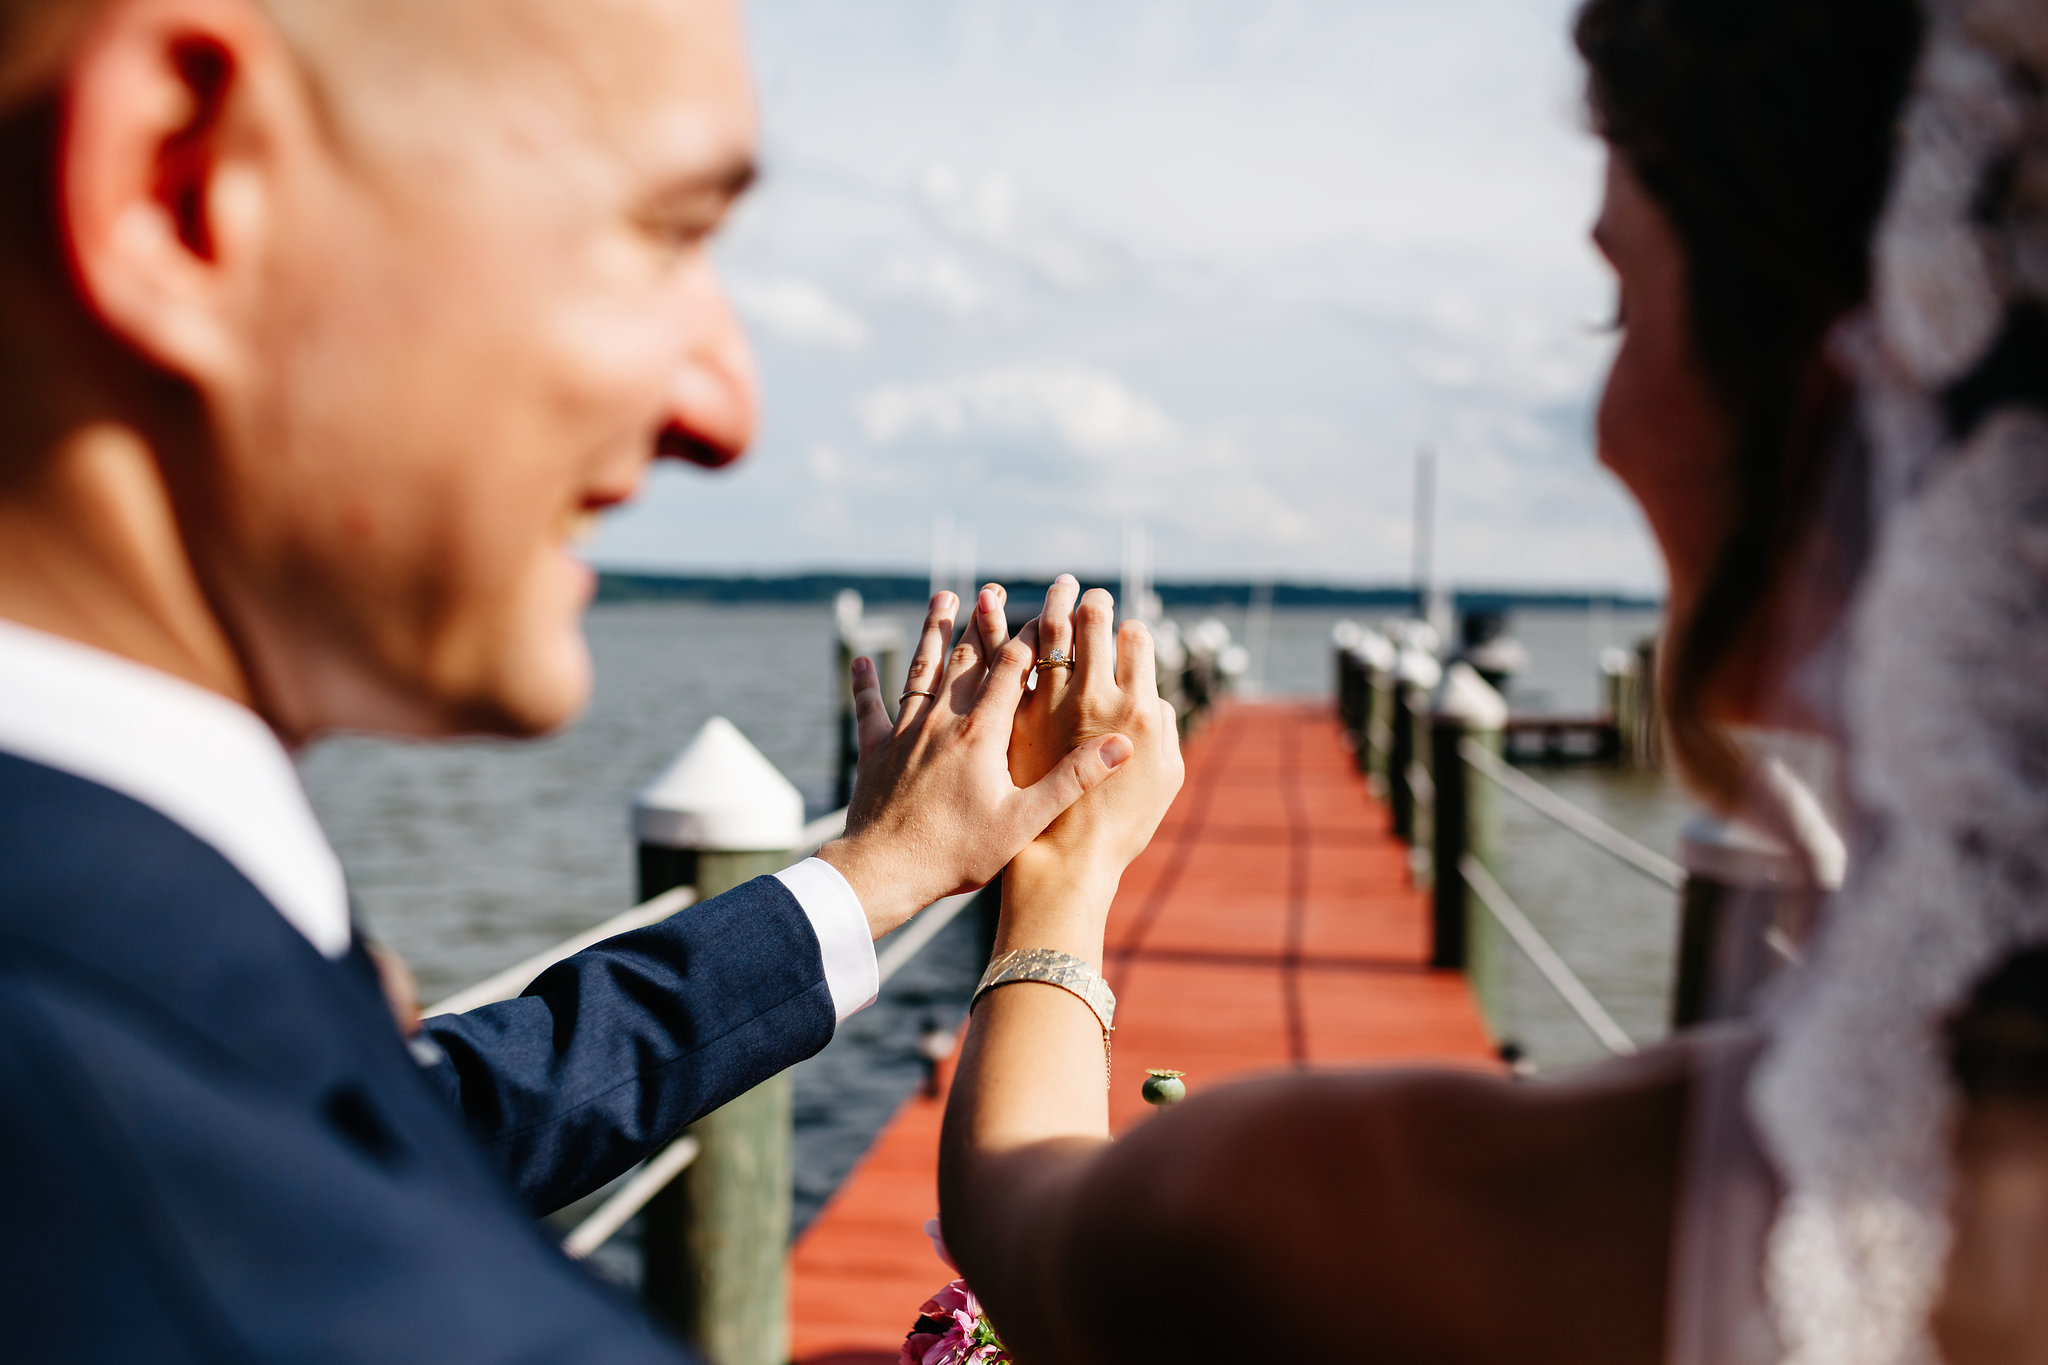 Maria&Dave2017-07-28at9.36.57AM118.jpg